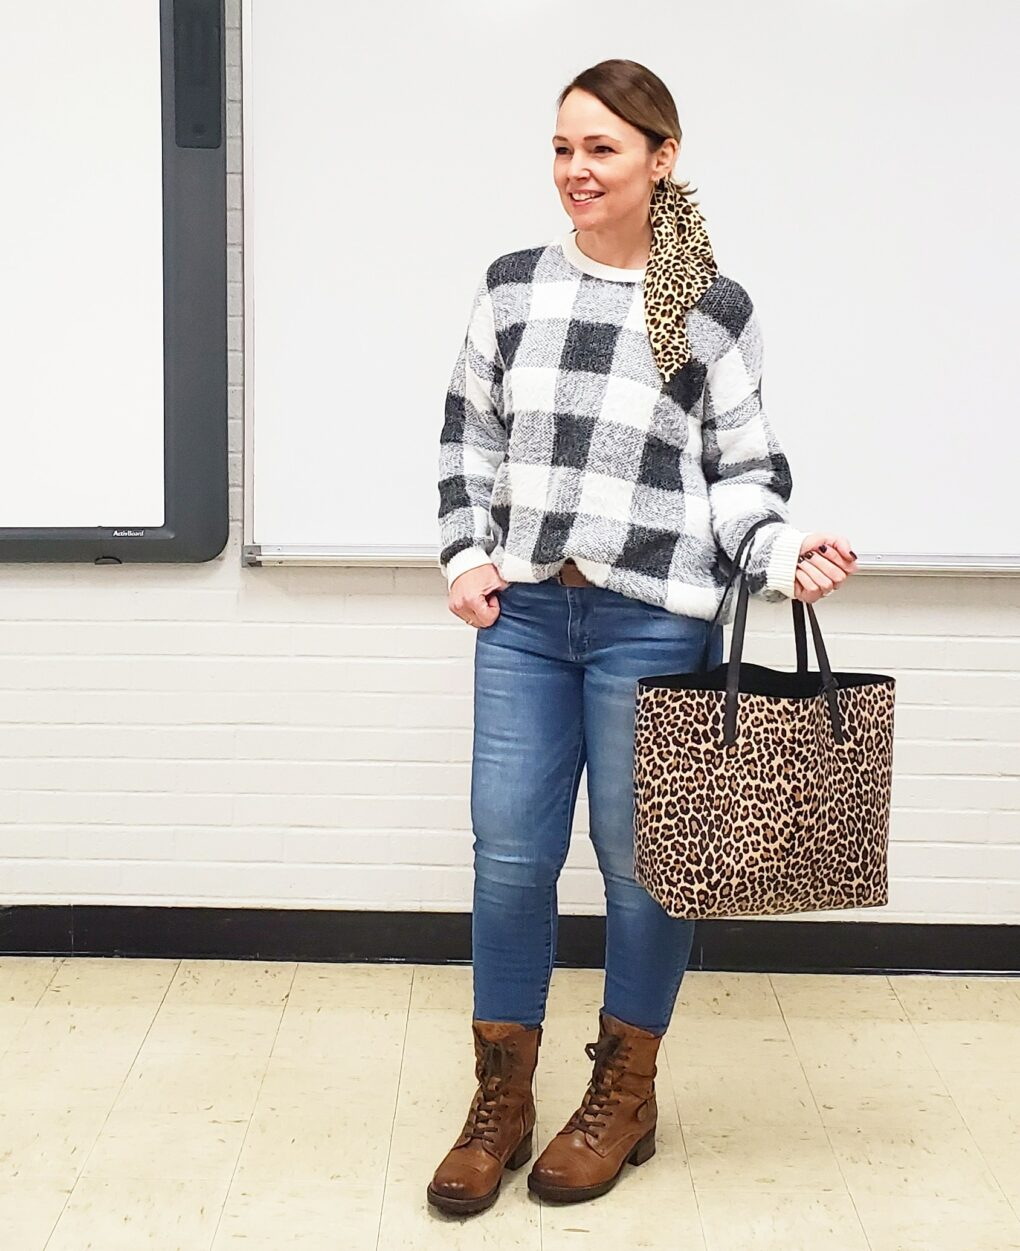 Casual holiday outfit with soft buffalo plaid sweater and leopard print accessories